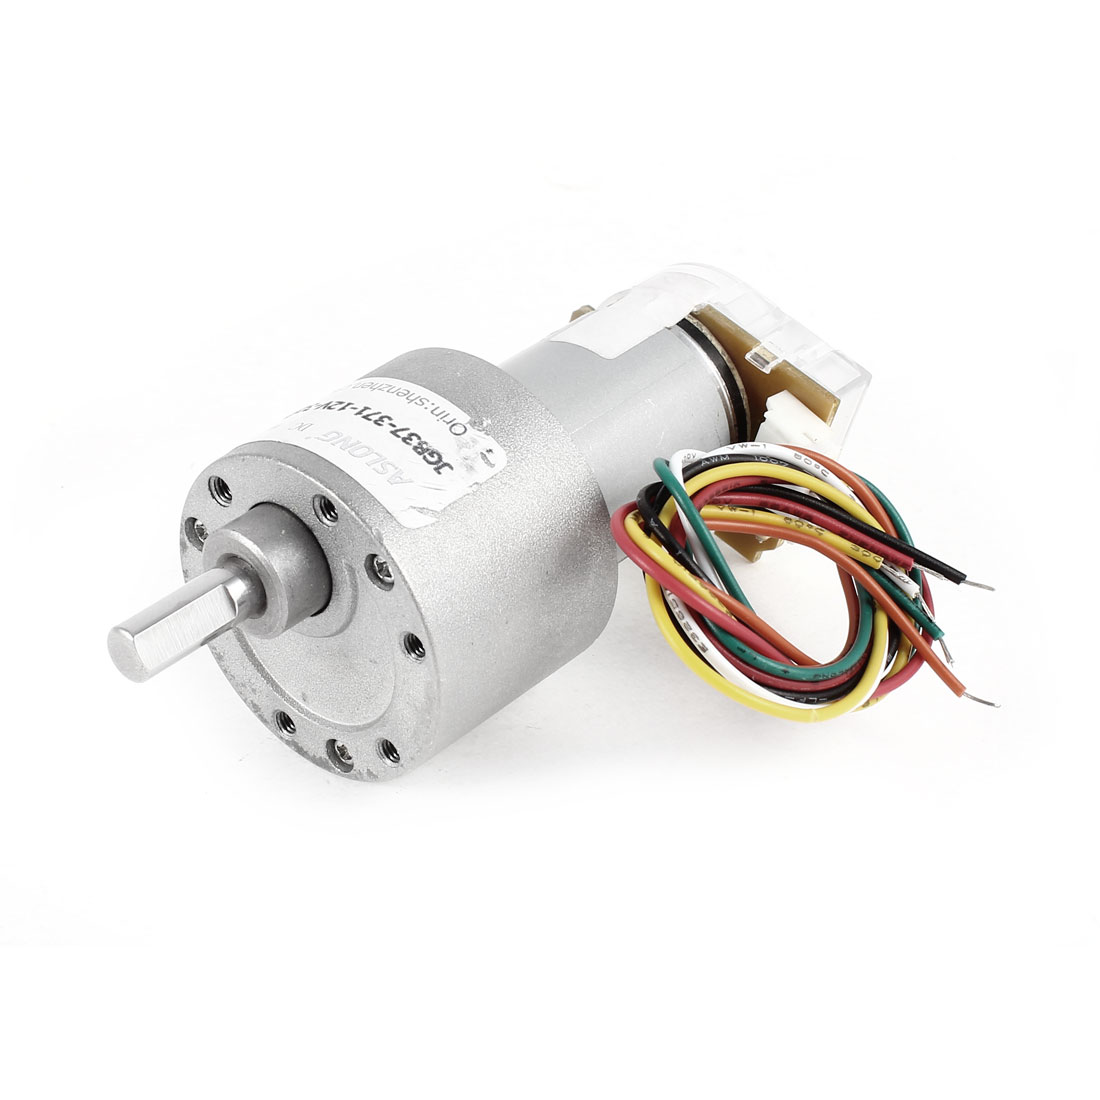 DC 12V 32RPM 5.9mm Shaft Permanent Magnetic Electric Gear Box Speed Reduce Motor